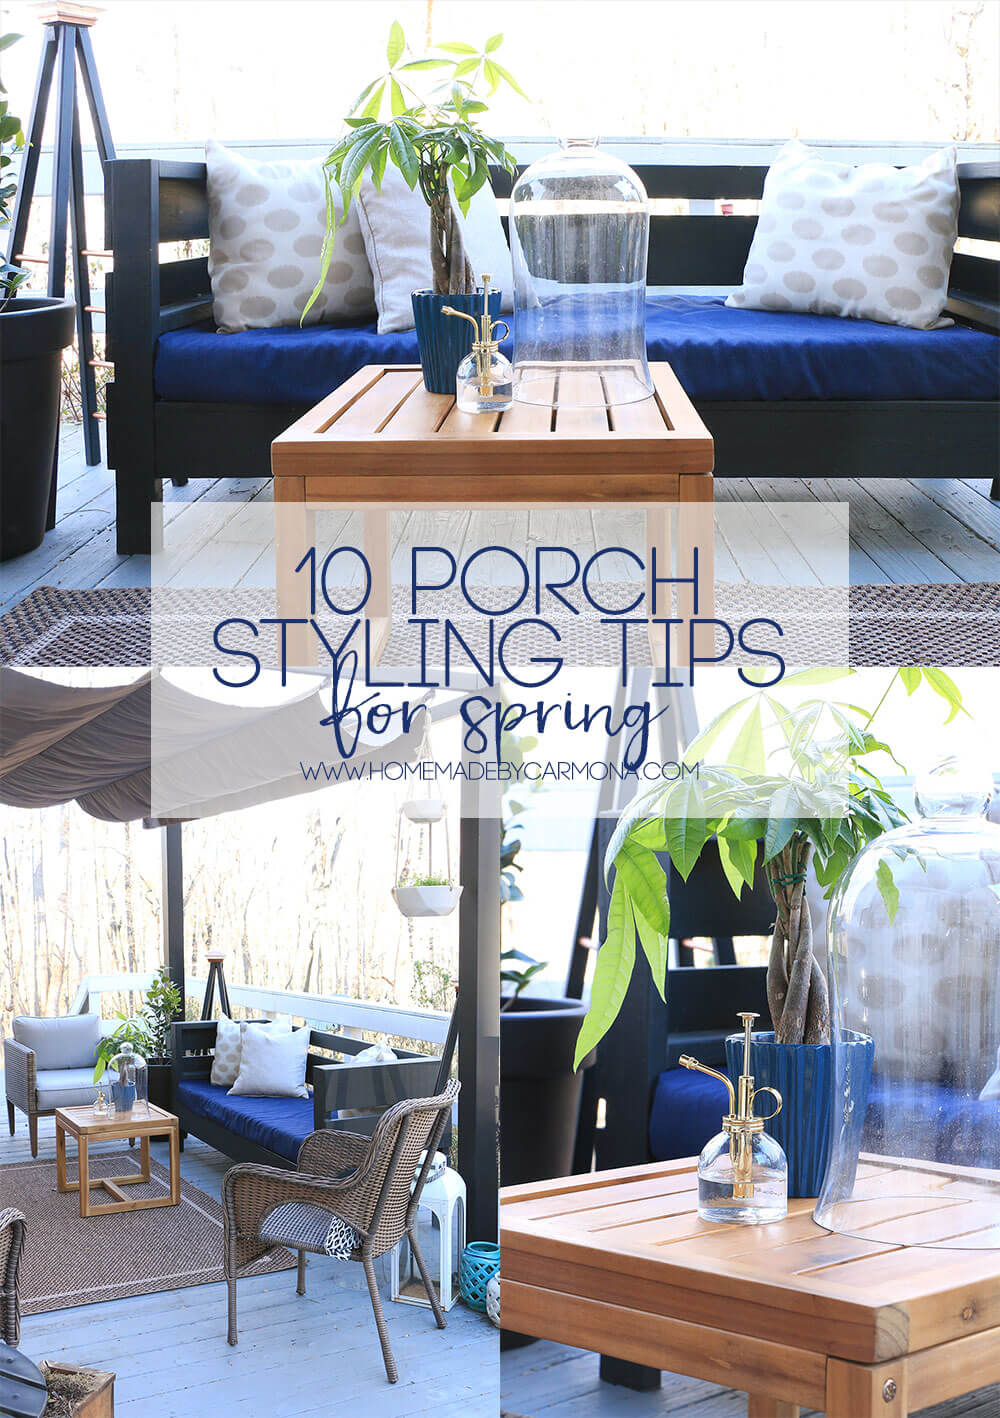 10-Porch-Styling-Tips-For-Spring